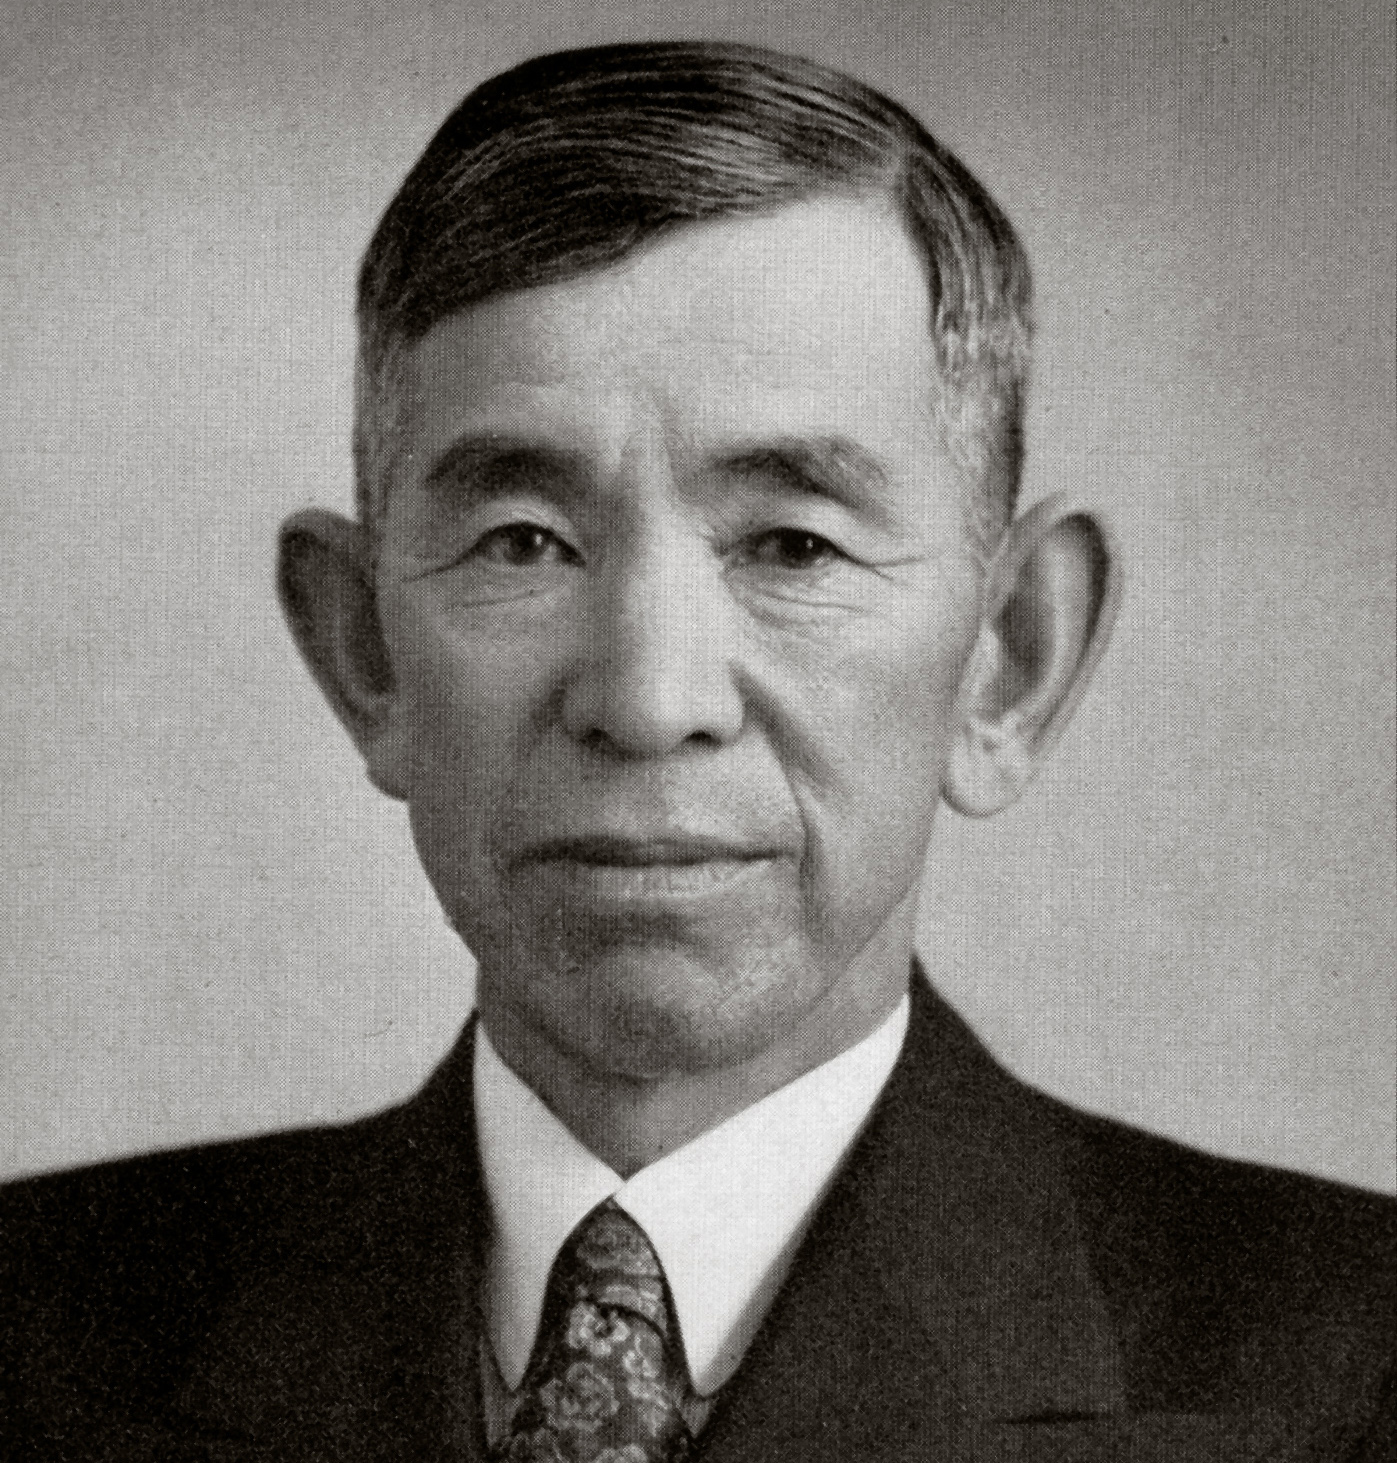 F.M. Uyematsu, Star Nursery proprietor